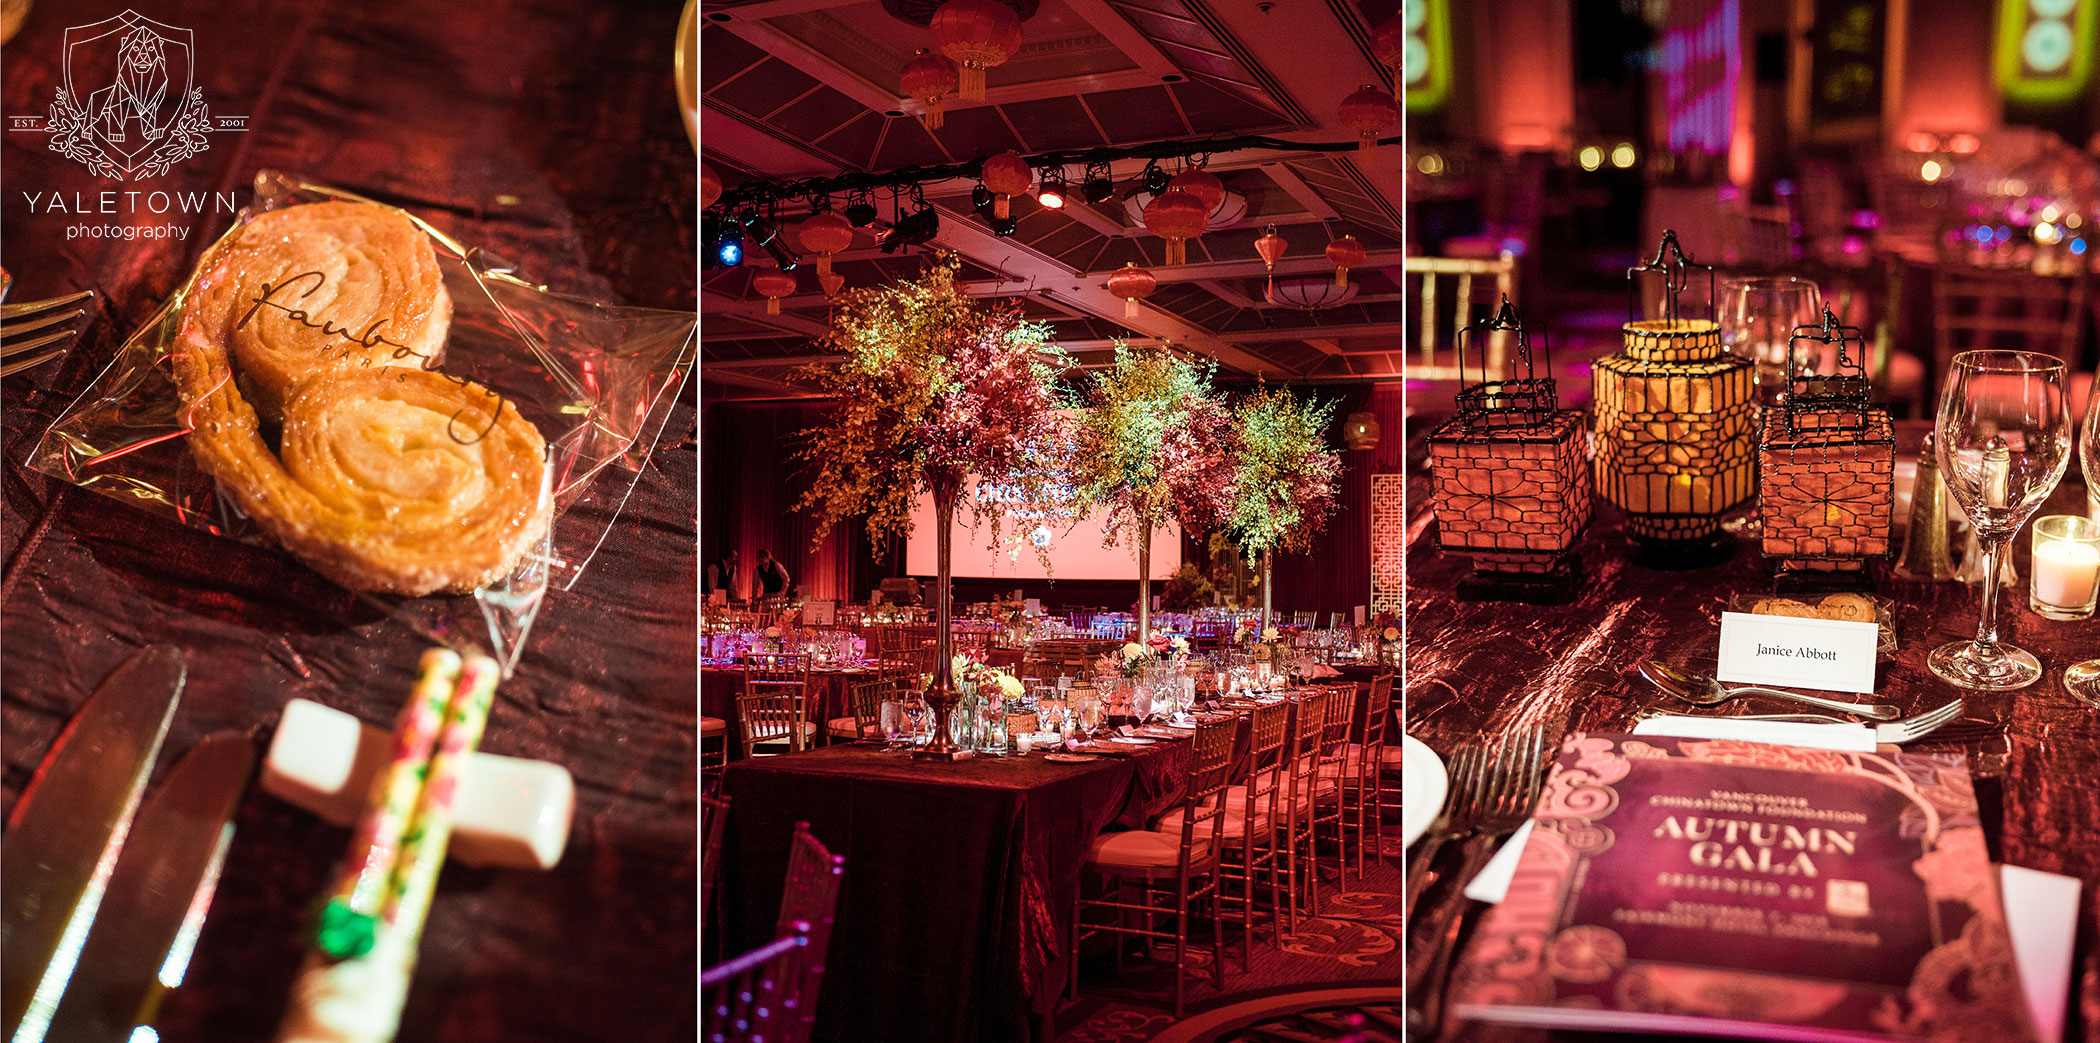 Vancouver-Chinatown-Foundation-Gala-Fairmont-Hotel-Vancouver-Yaletown-Photography-Event-Photographer-photo